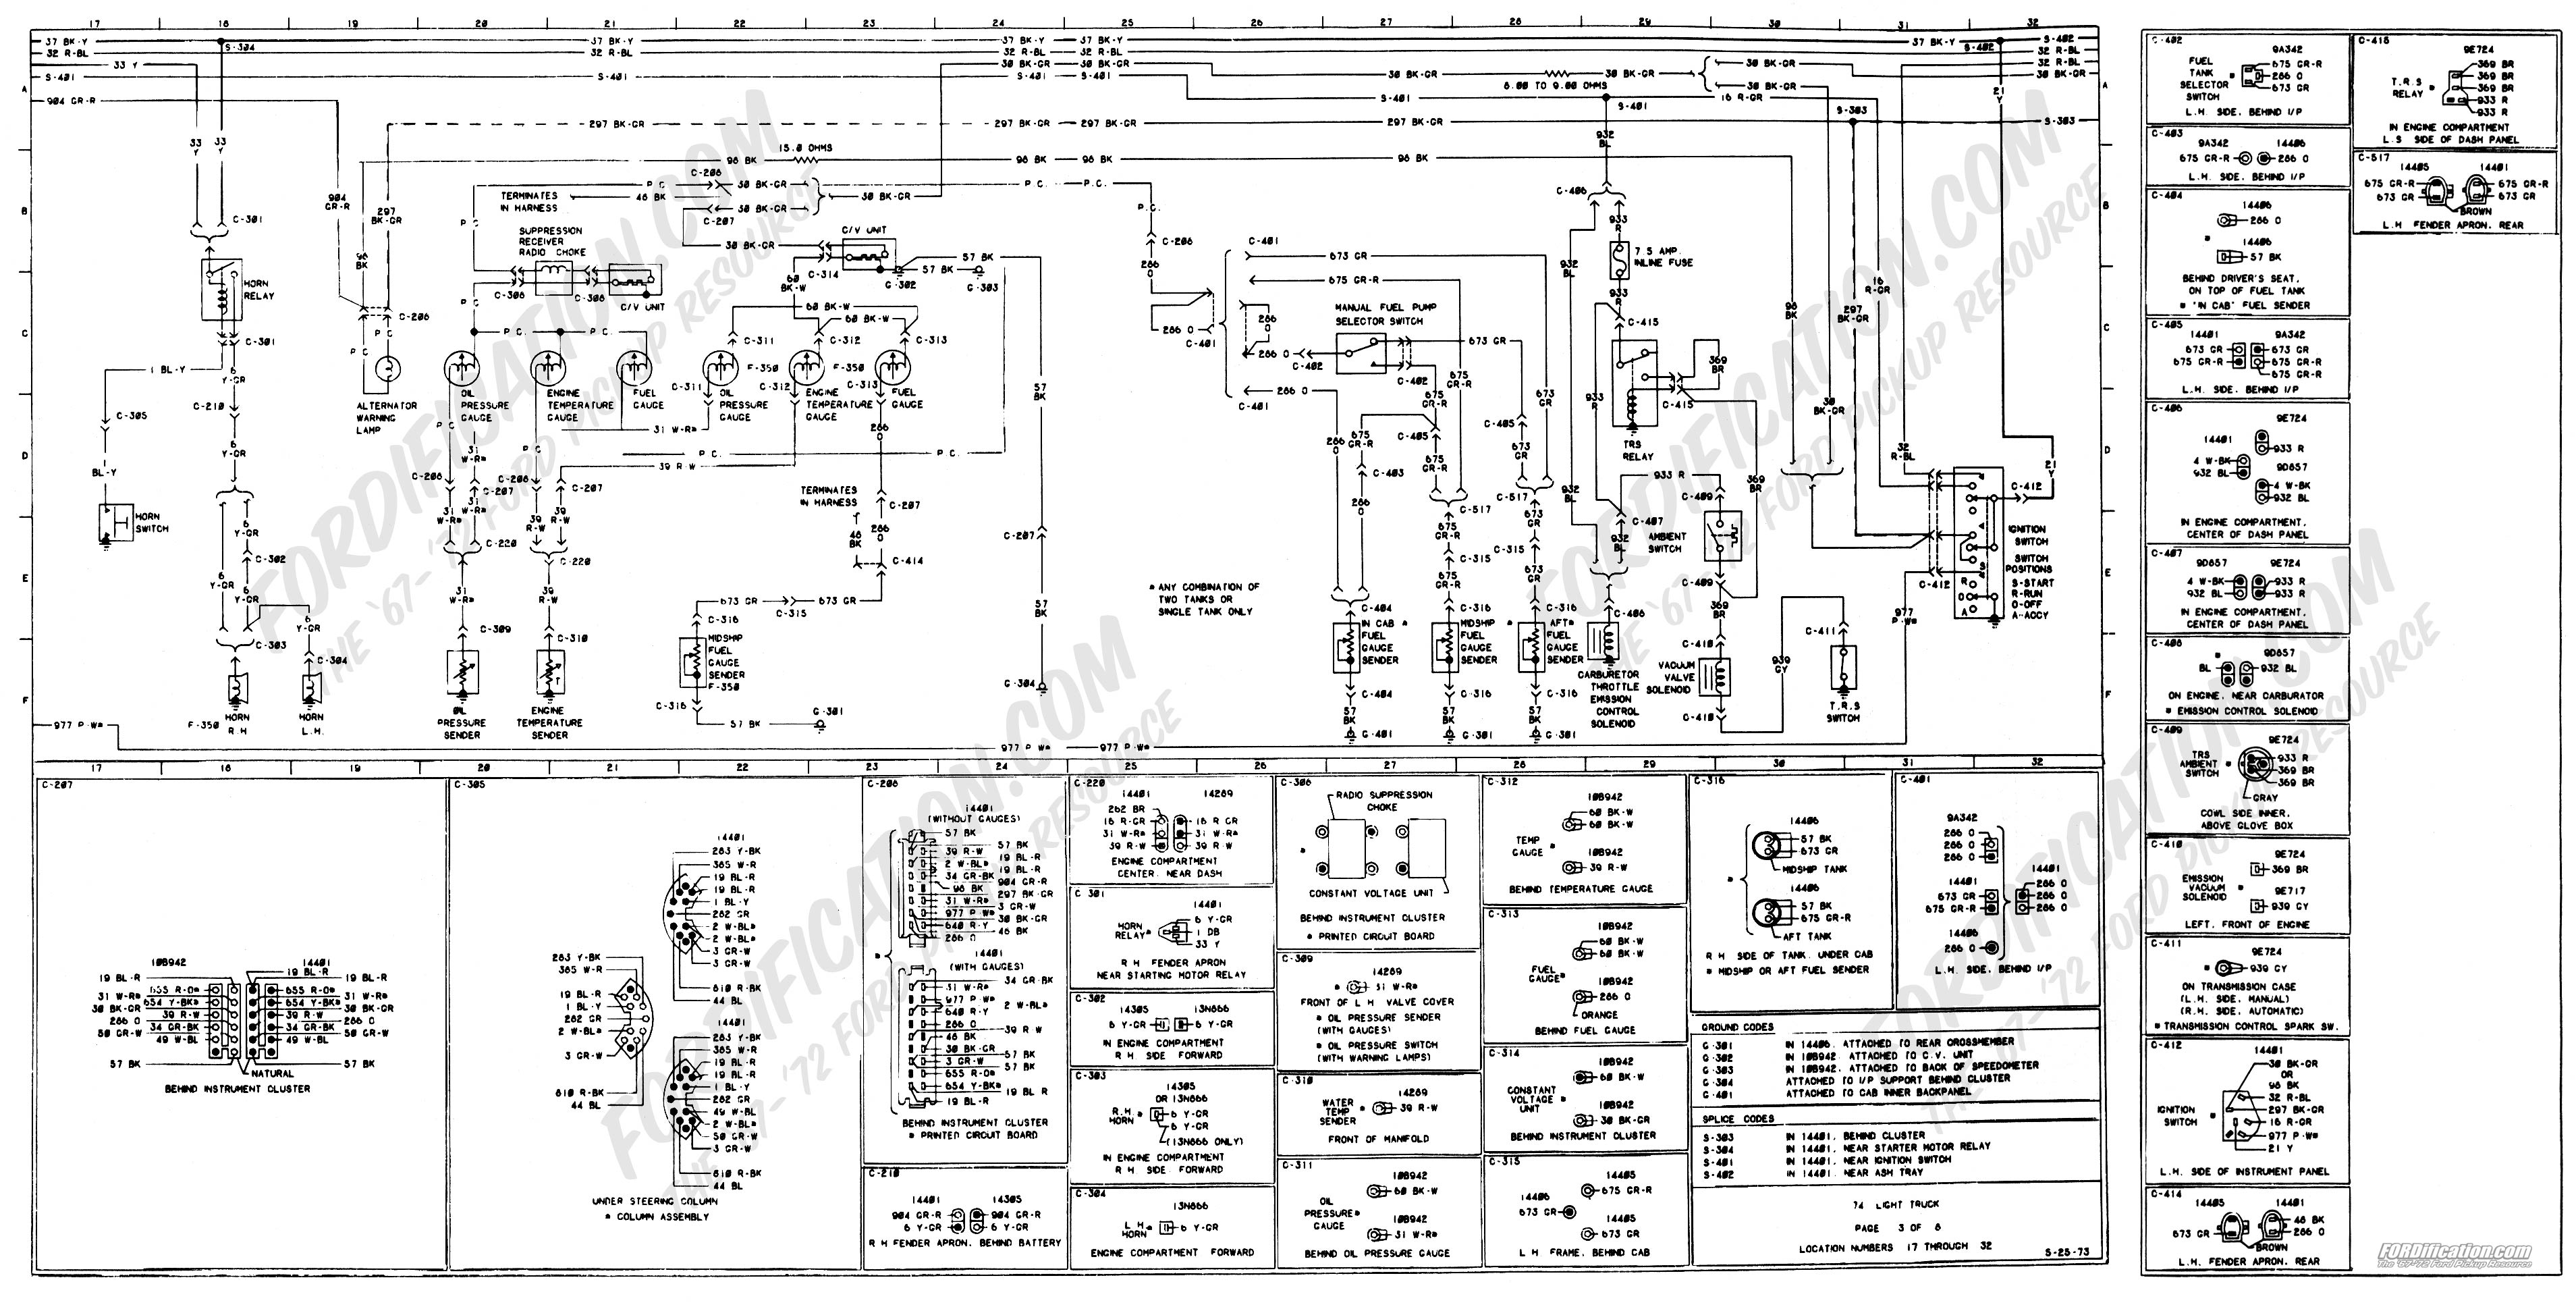 1973 1979 ford truck wiring diagrams schematics fordification net rh fordification net 2000 Ford Ranger Wiring Diagram 1995 ford econoline van radio wiring diagram